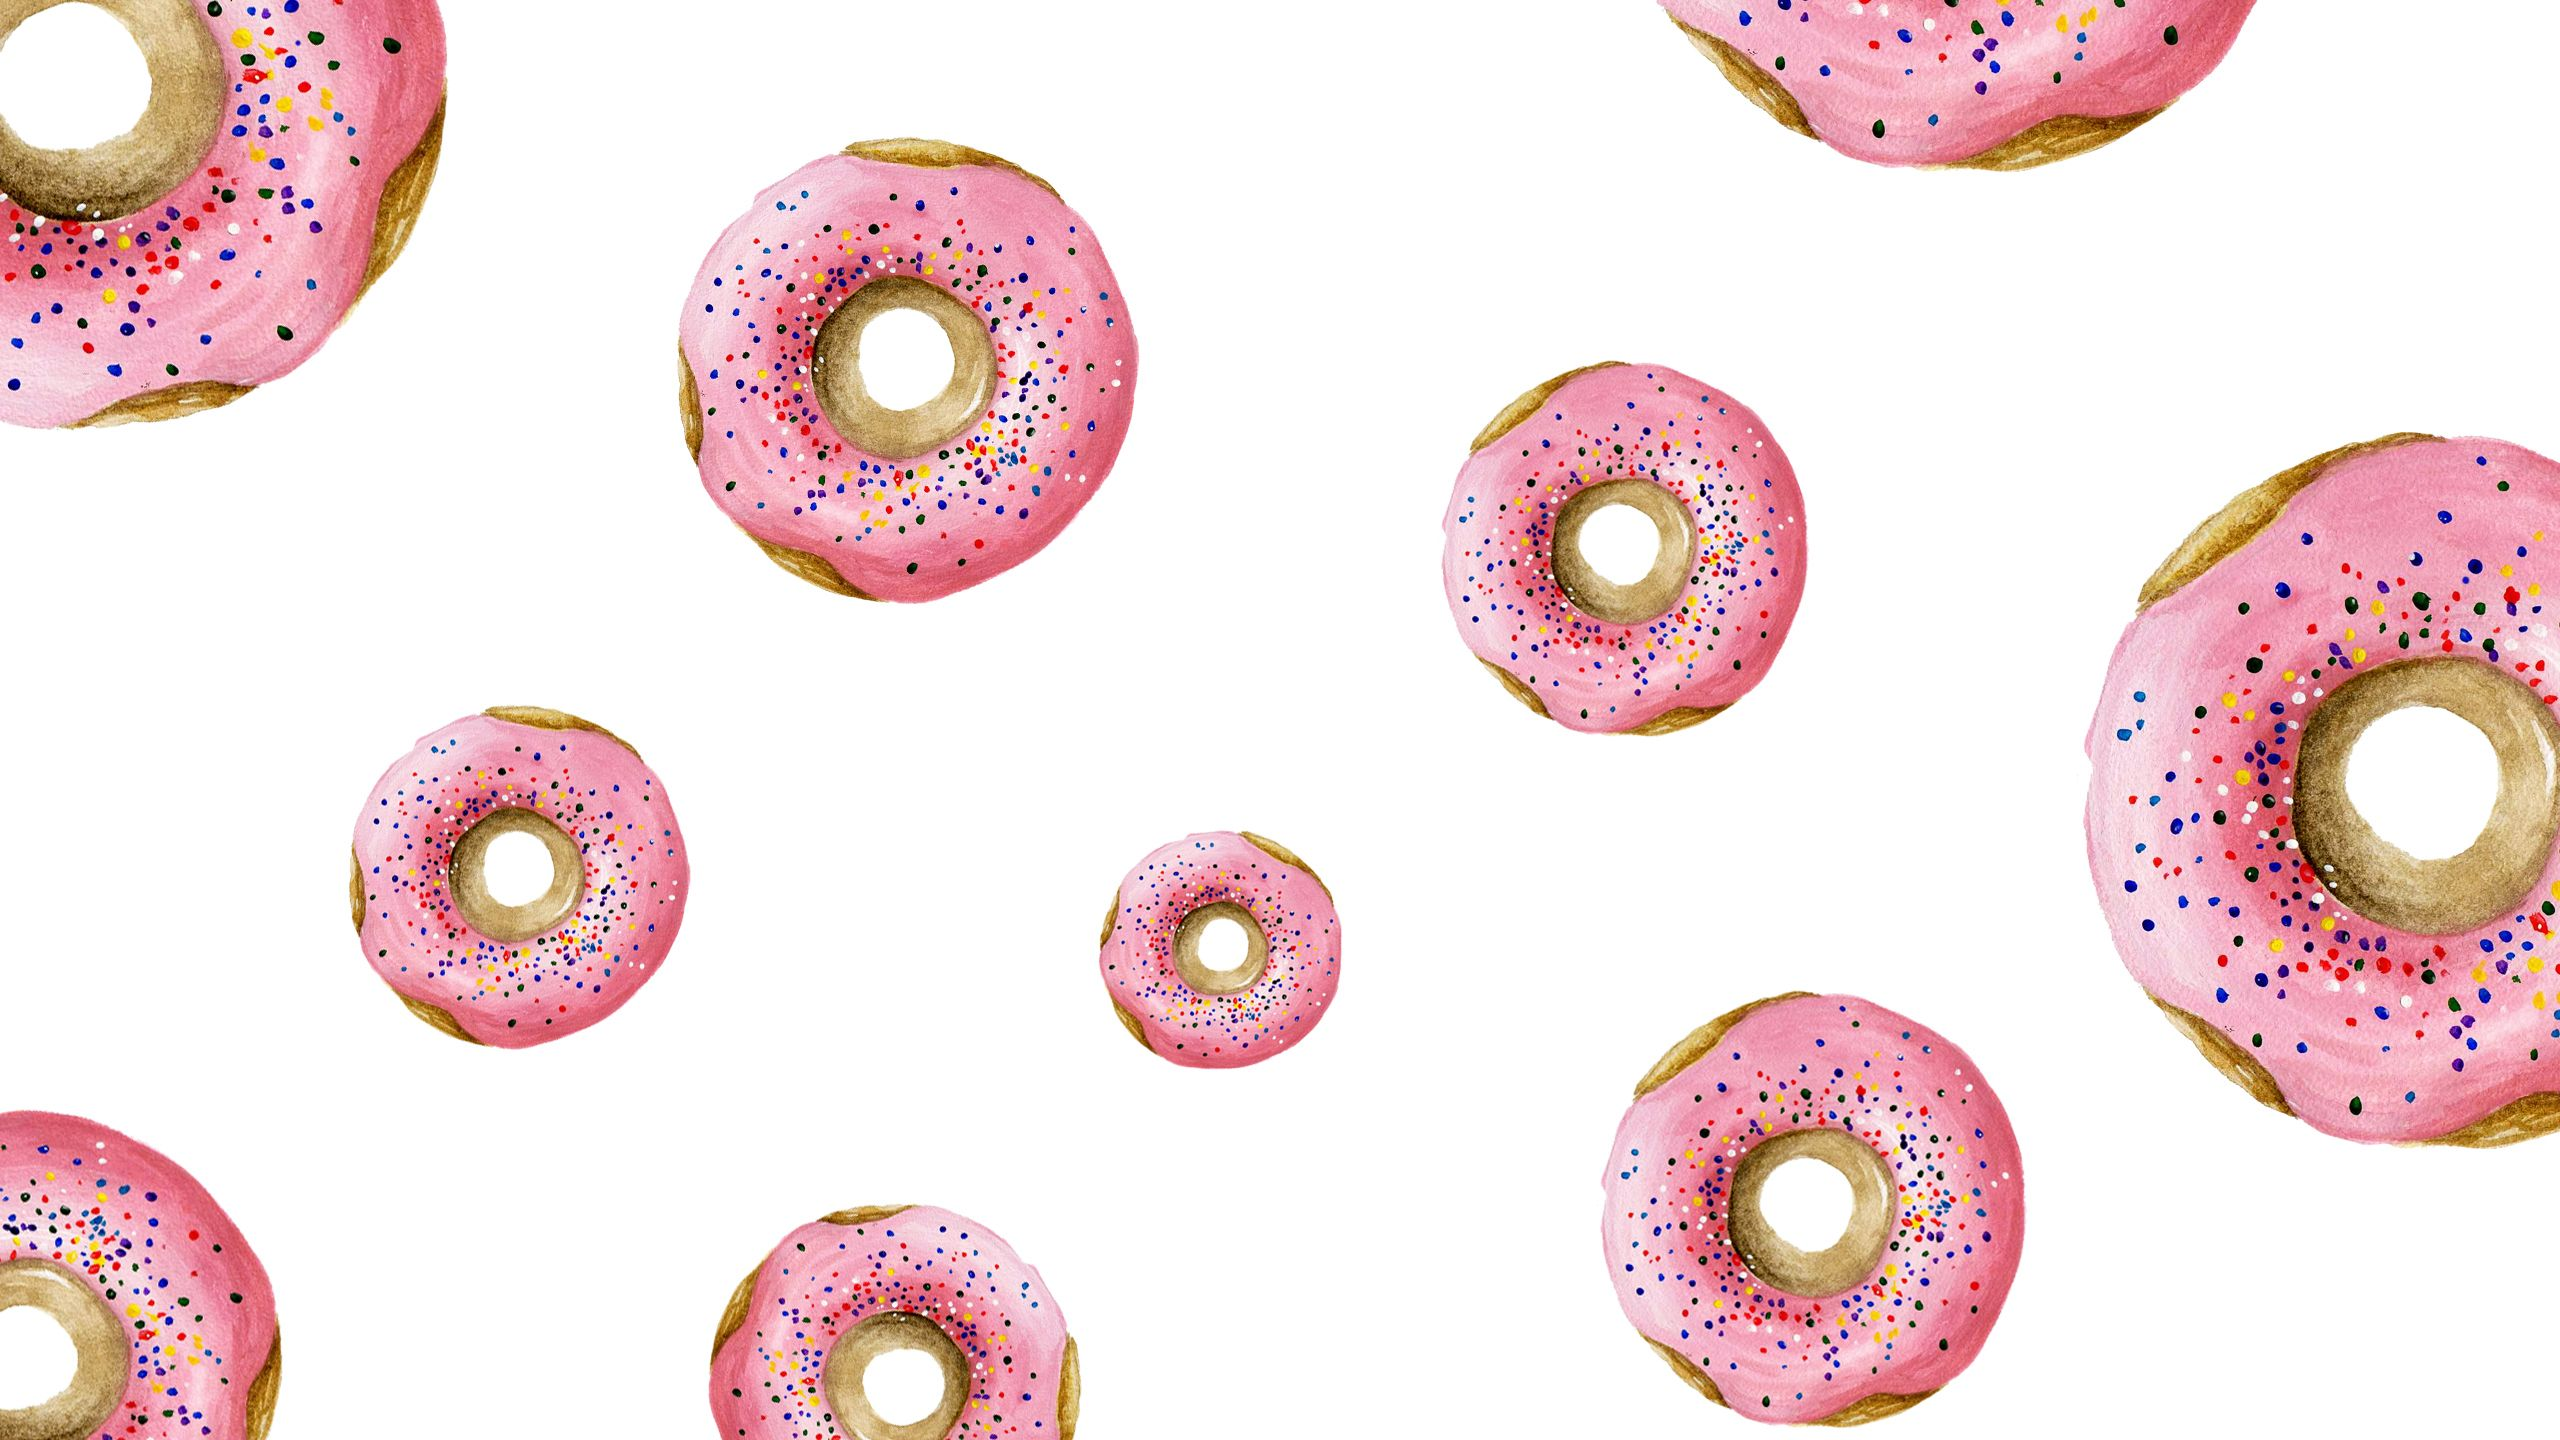 Downloads Donut Wallpaper Simple + Beyond Pink donuts